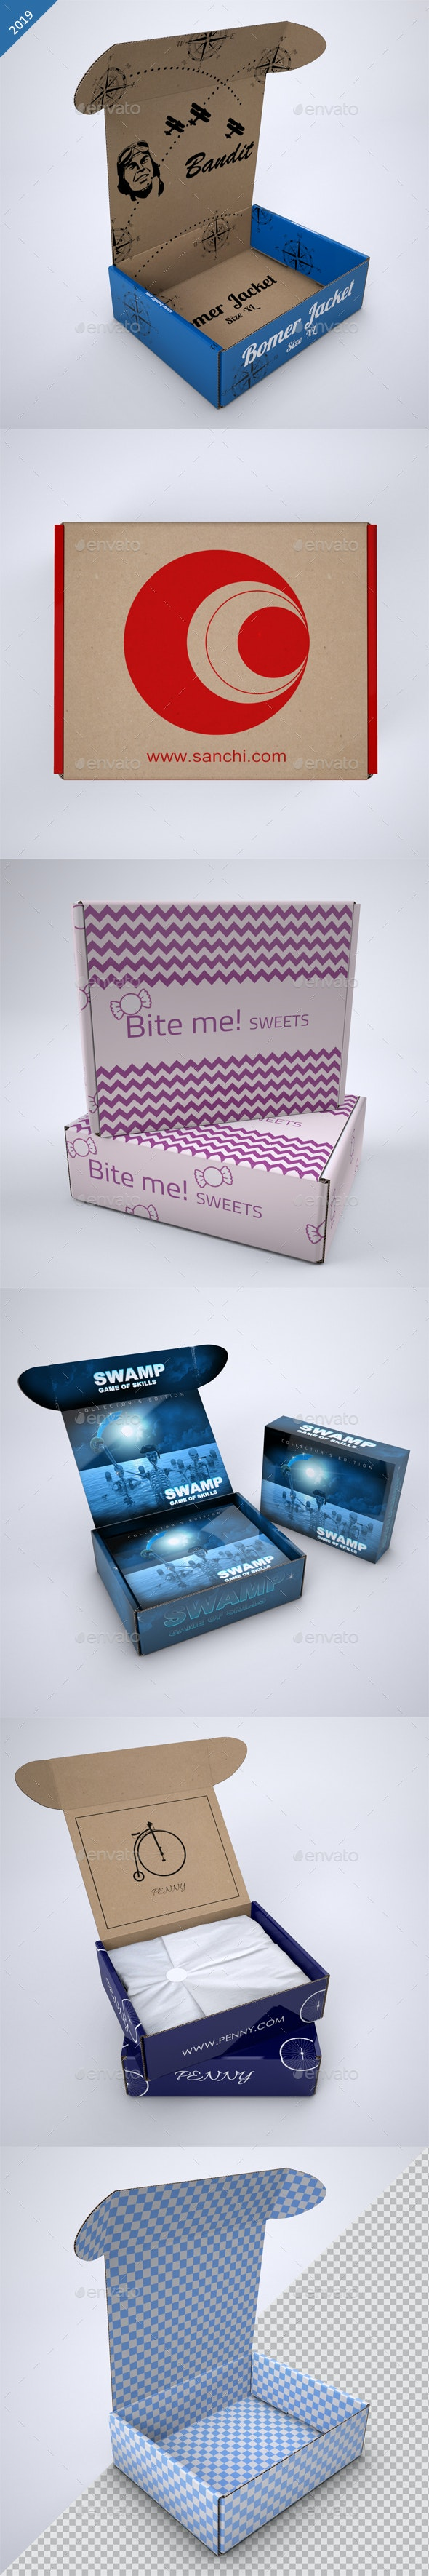 Subscription Box Mock-Up - Product Mock-Ups Graphics